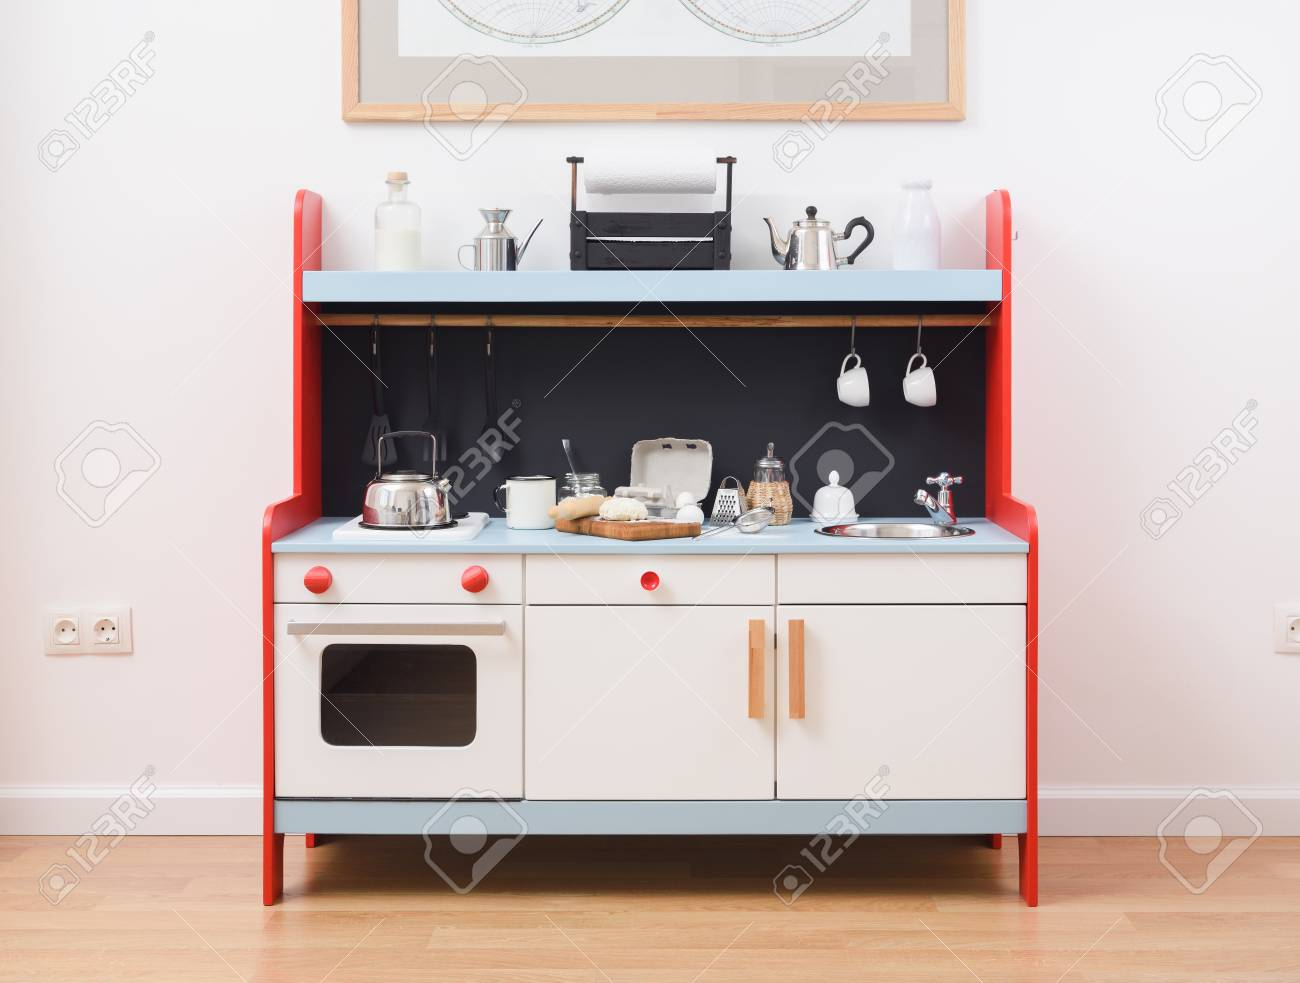 Play kitchen and toy kitchenware for children. Making dough for..